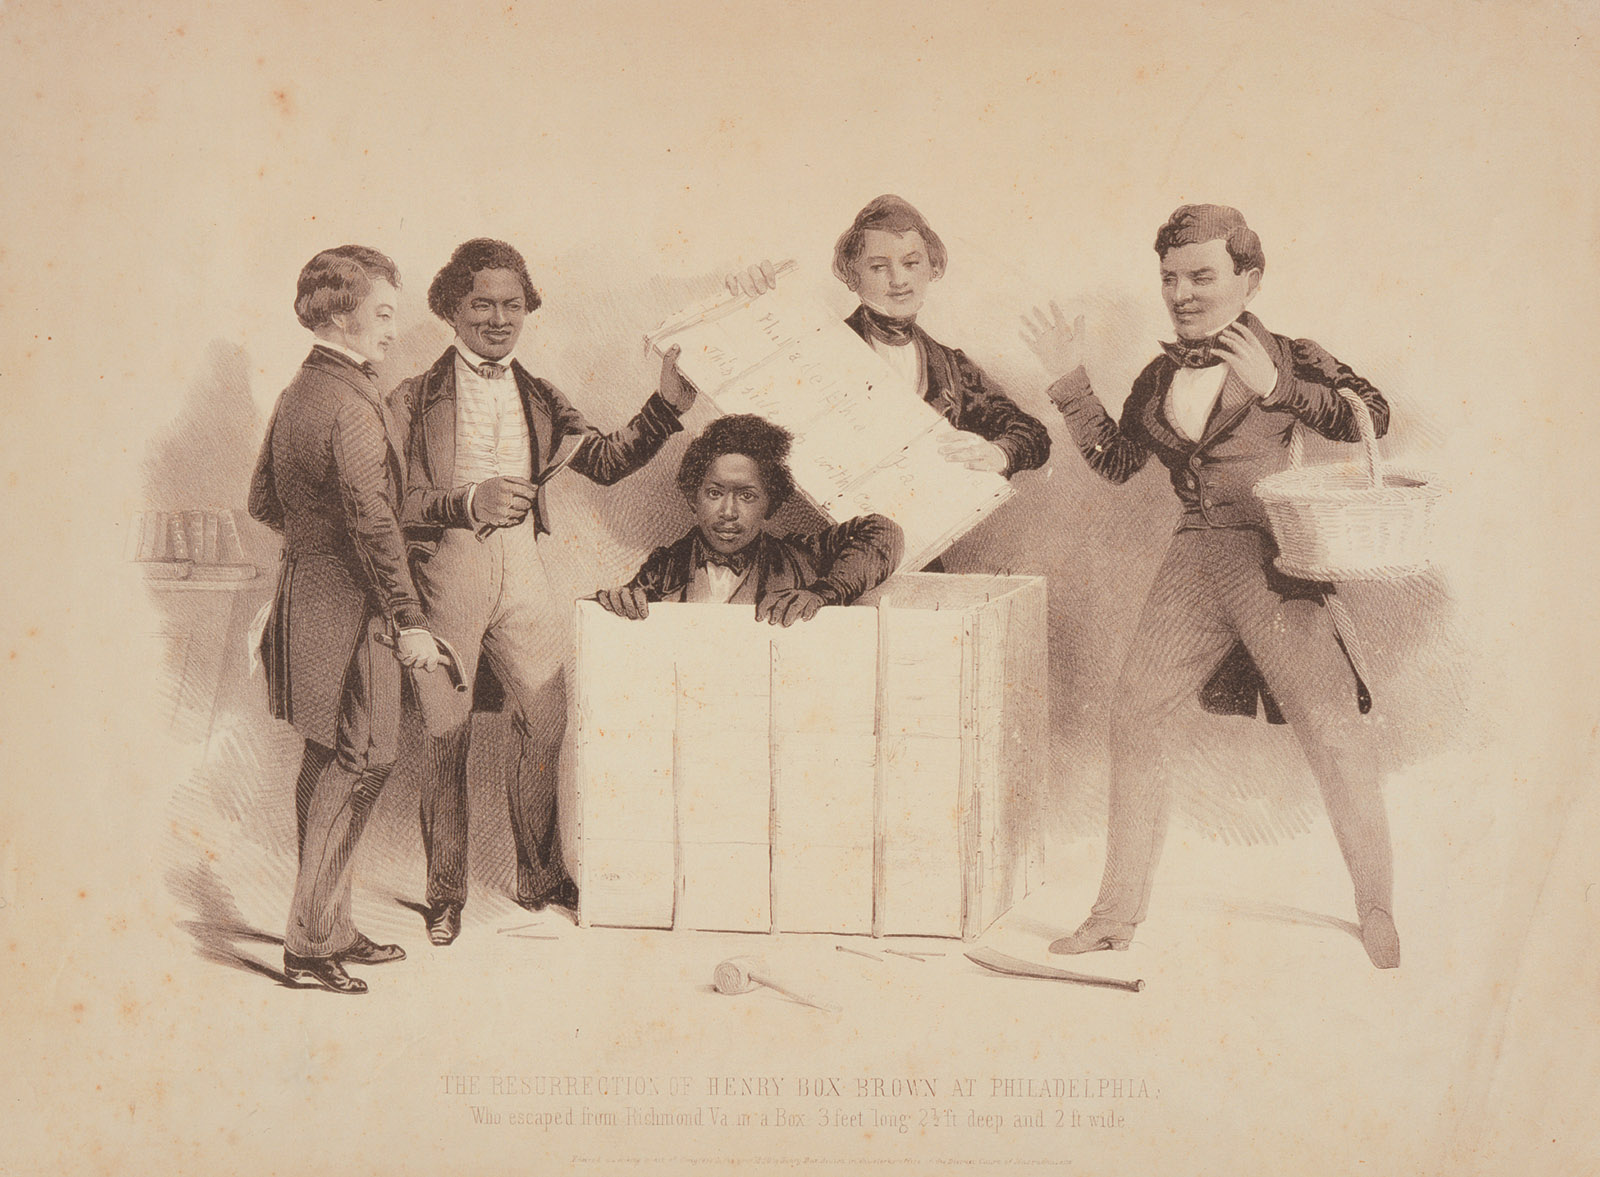 Samuel Worcester: The Resurrection of Henry Box Brown at Philadelphia, 1850. Brown shipped himself from Virginia to abolitionists in Philadelphia. His slave narrative was soon published, and he became a successful lecturer and performer.